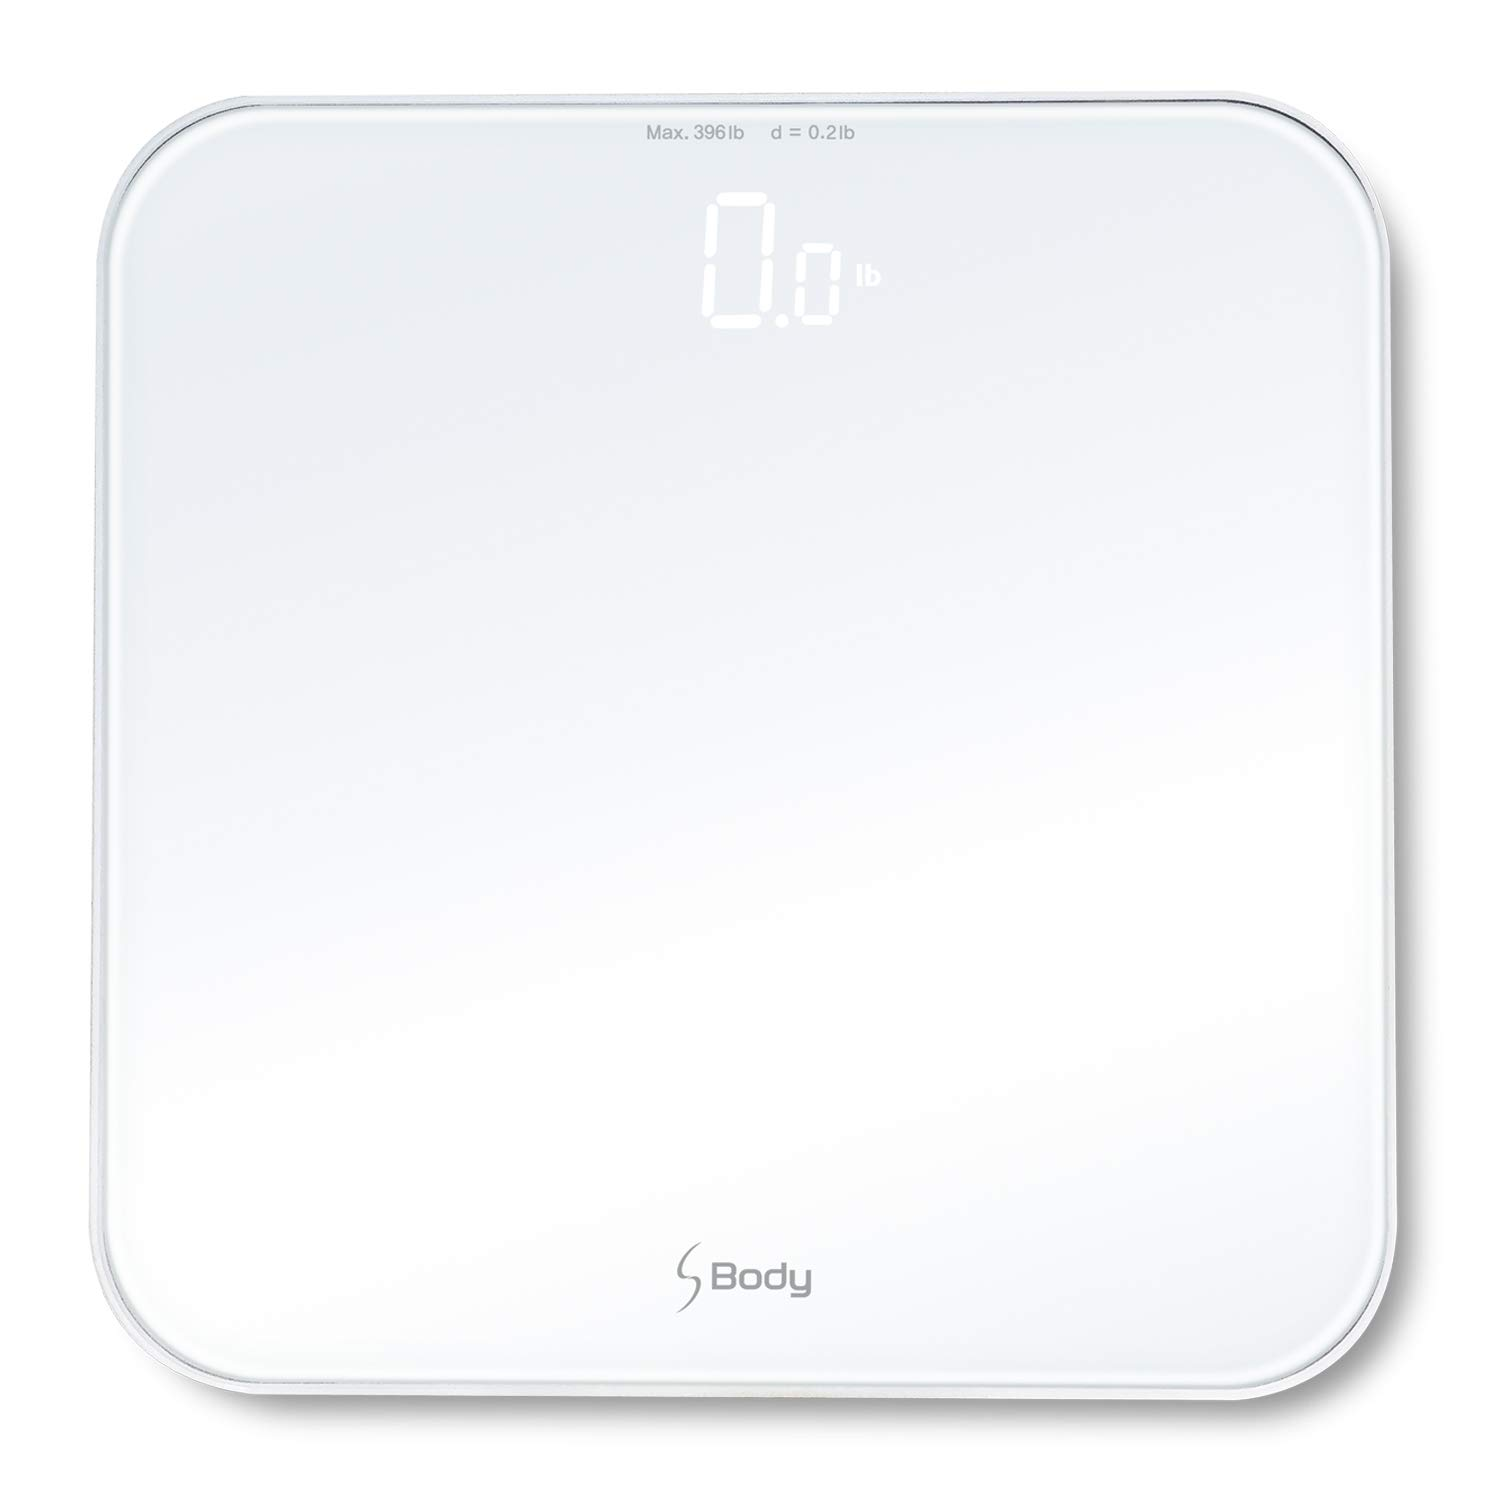 S Body High Precision Ultra Wide Digital Body Weight Bathroom Scale up to 396lb/180kg, Super-Clear Large LED Display, ''Step-On'' Technology, White